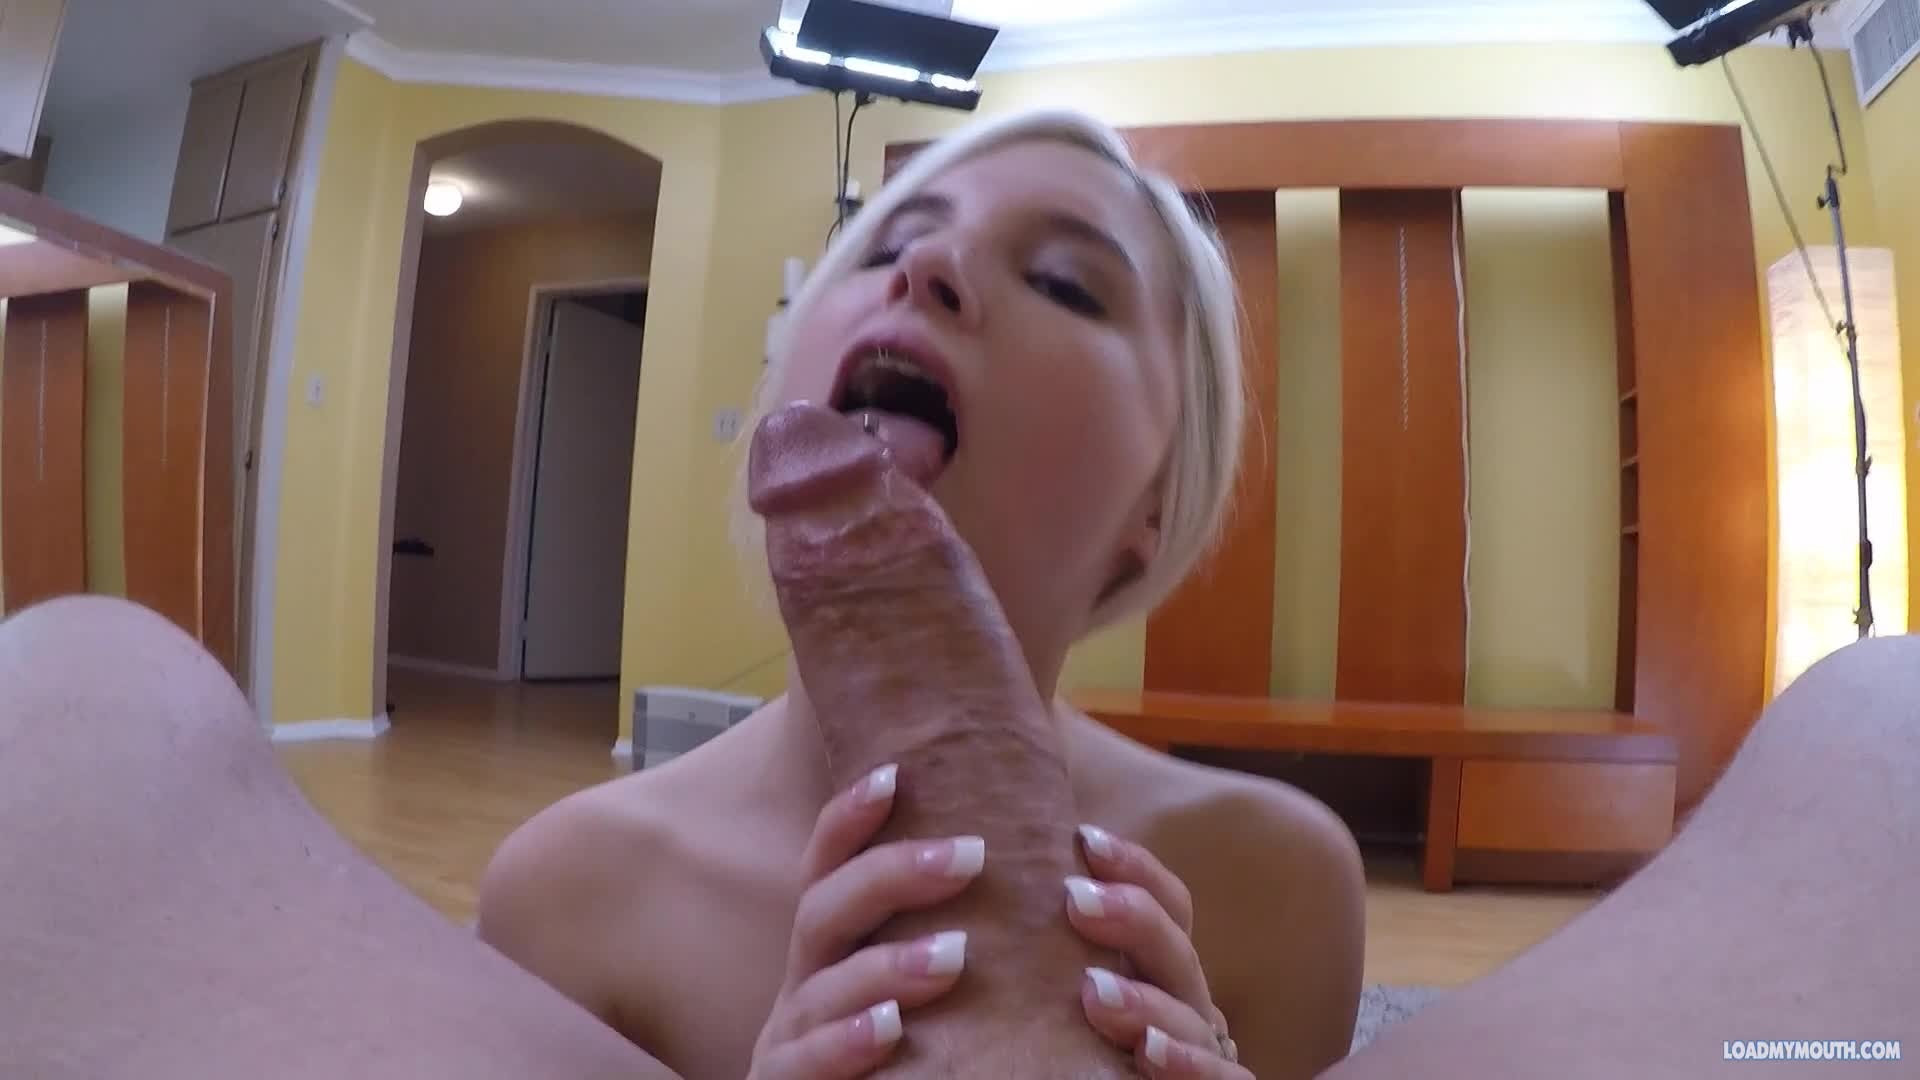 Bunibun fucking bbc for the first time solo 4